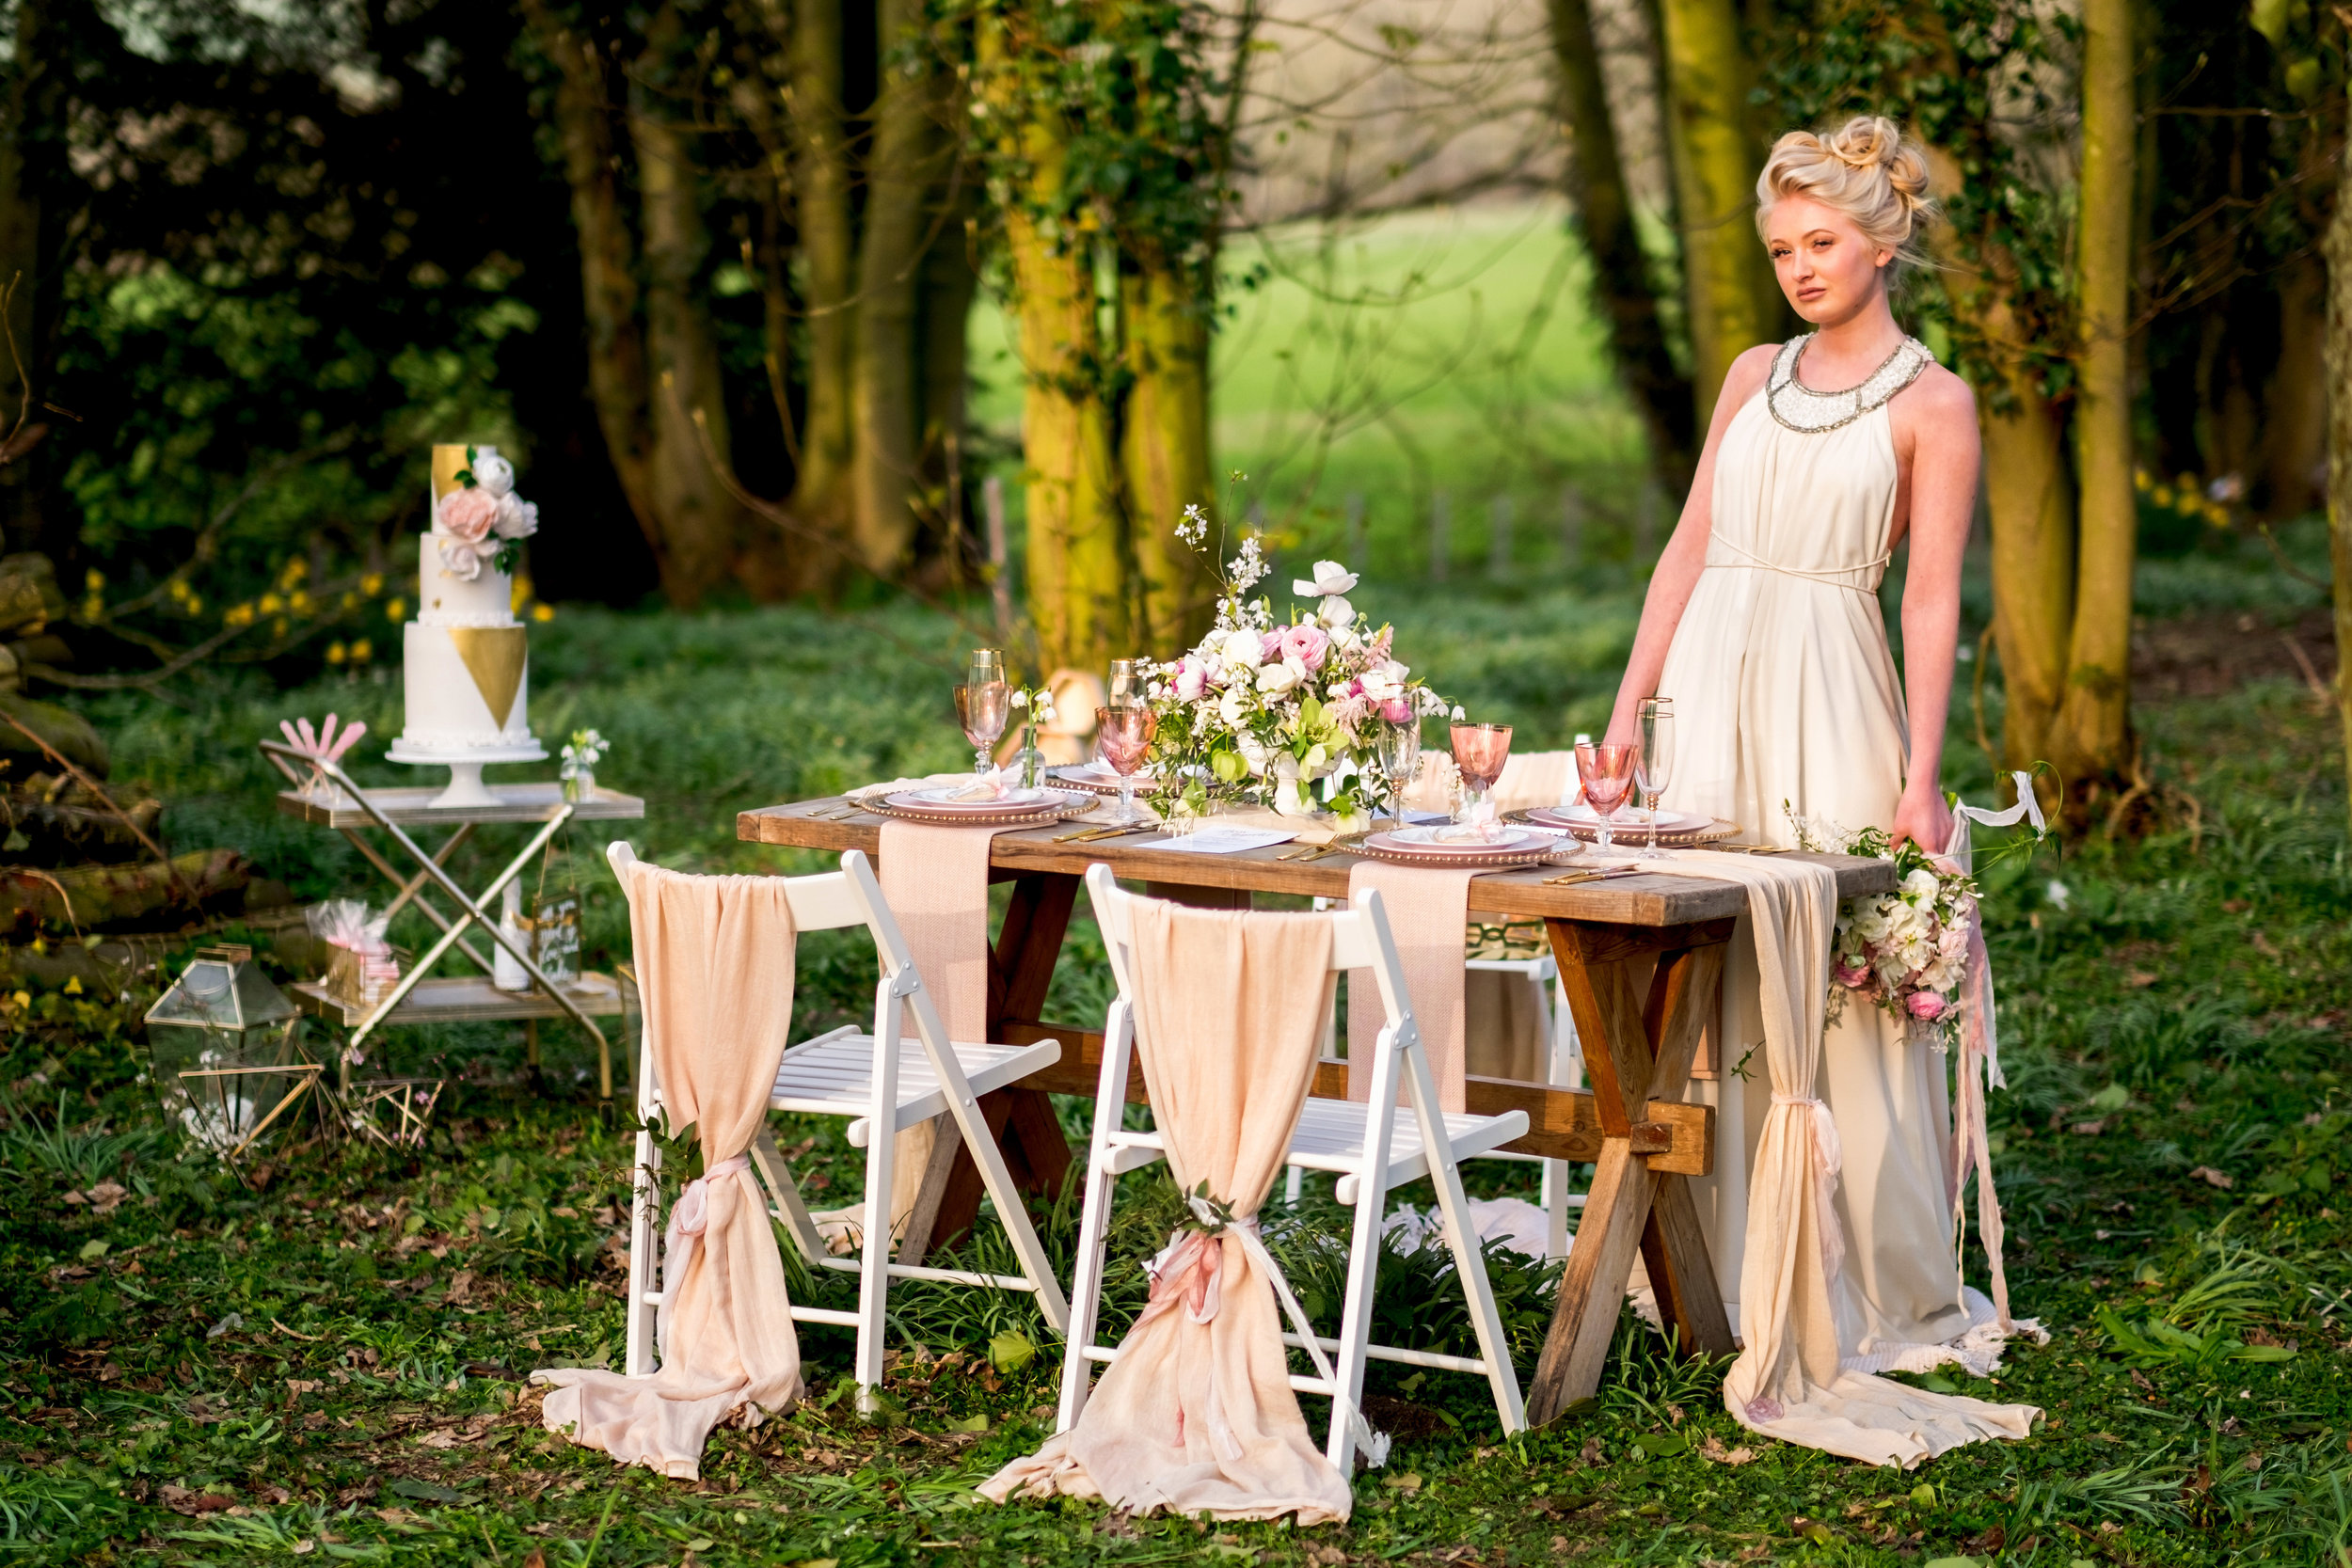 Image Dominic Whiten Photography | Florals - Moss & Stone Floral Design